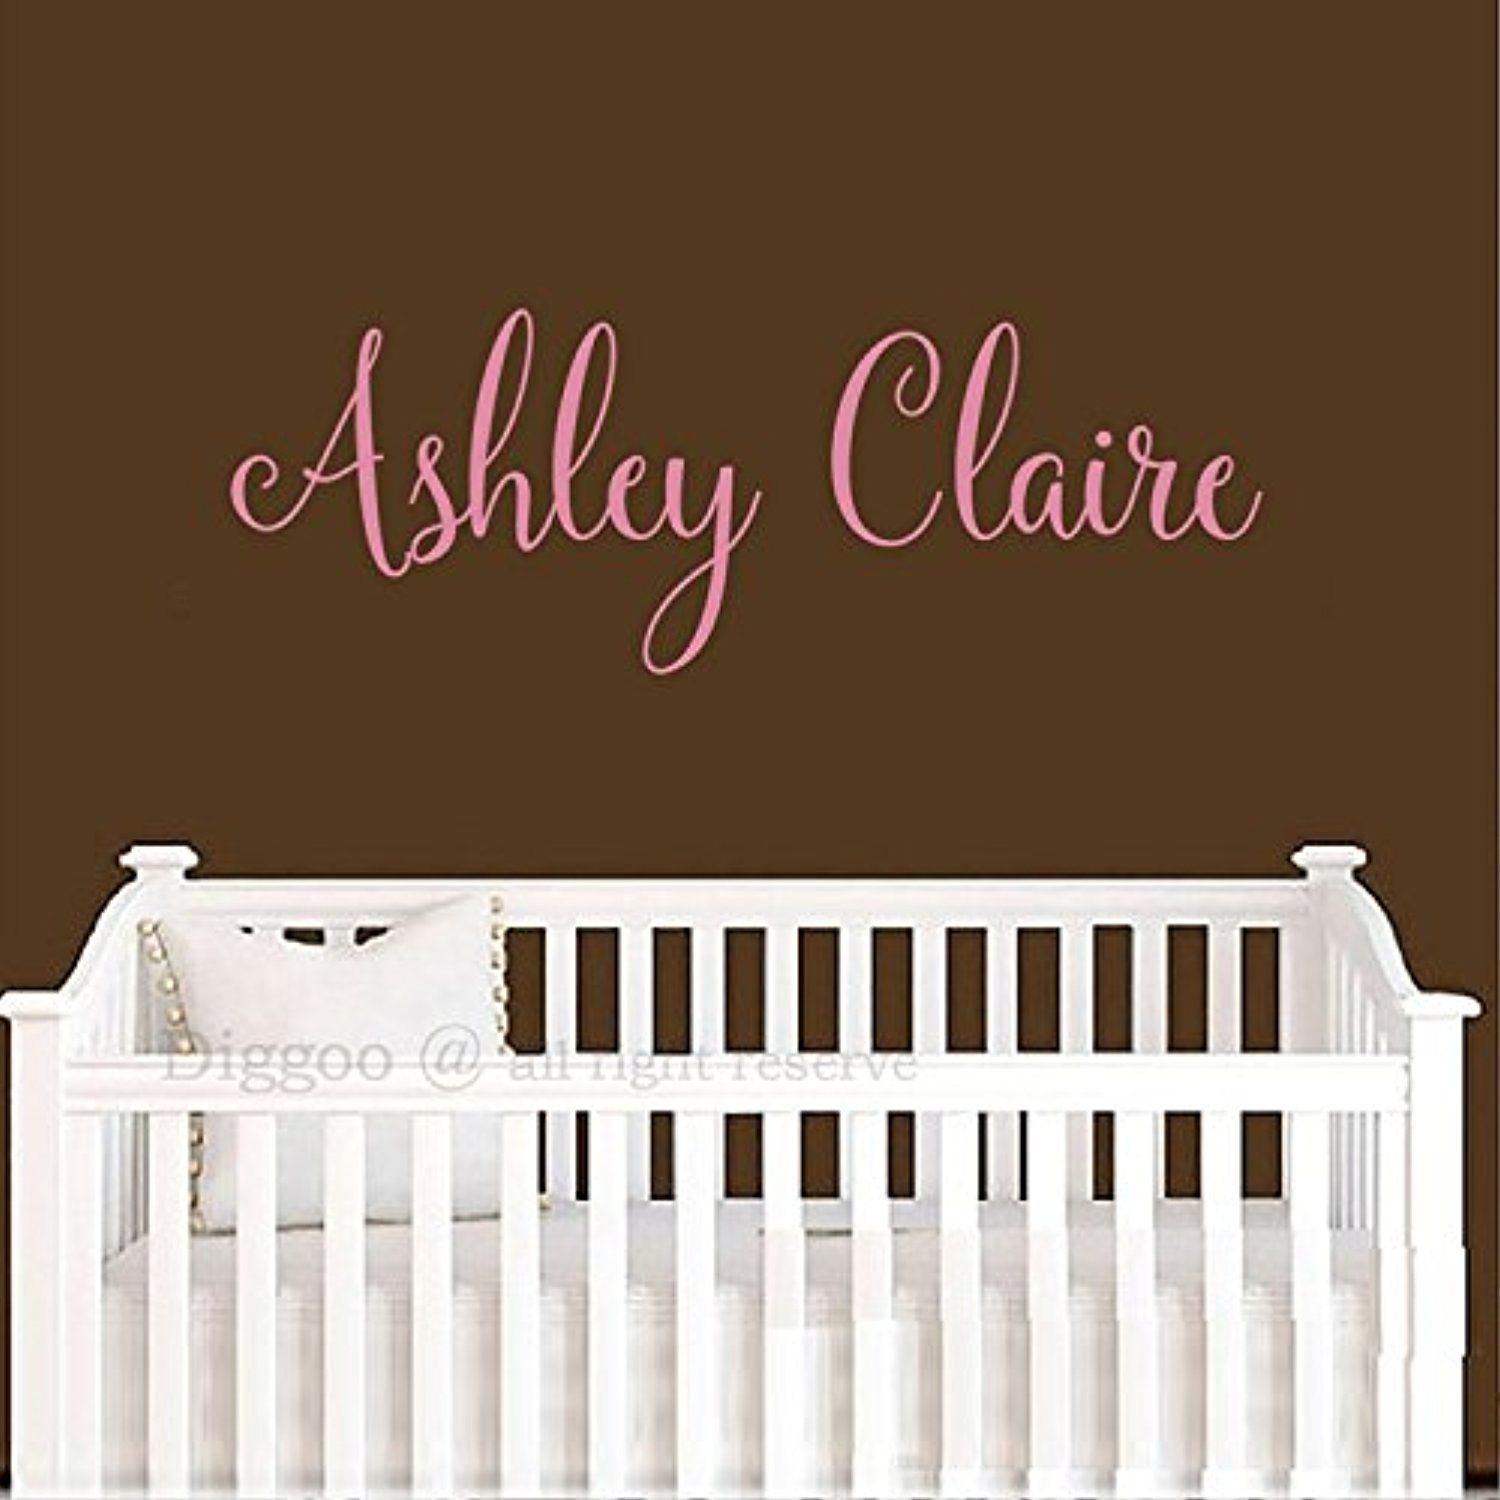 Baby Name Wall Decals Images Home Wall Decoration Ideas - Baby name wall decals